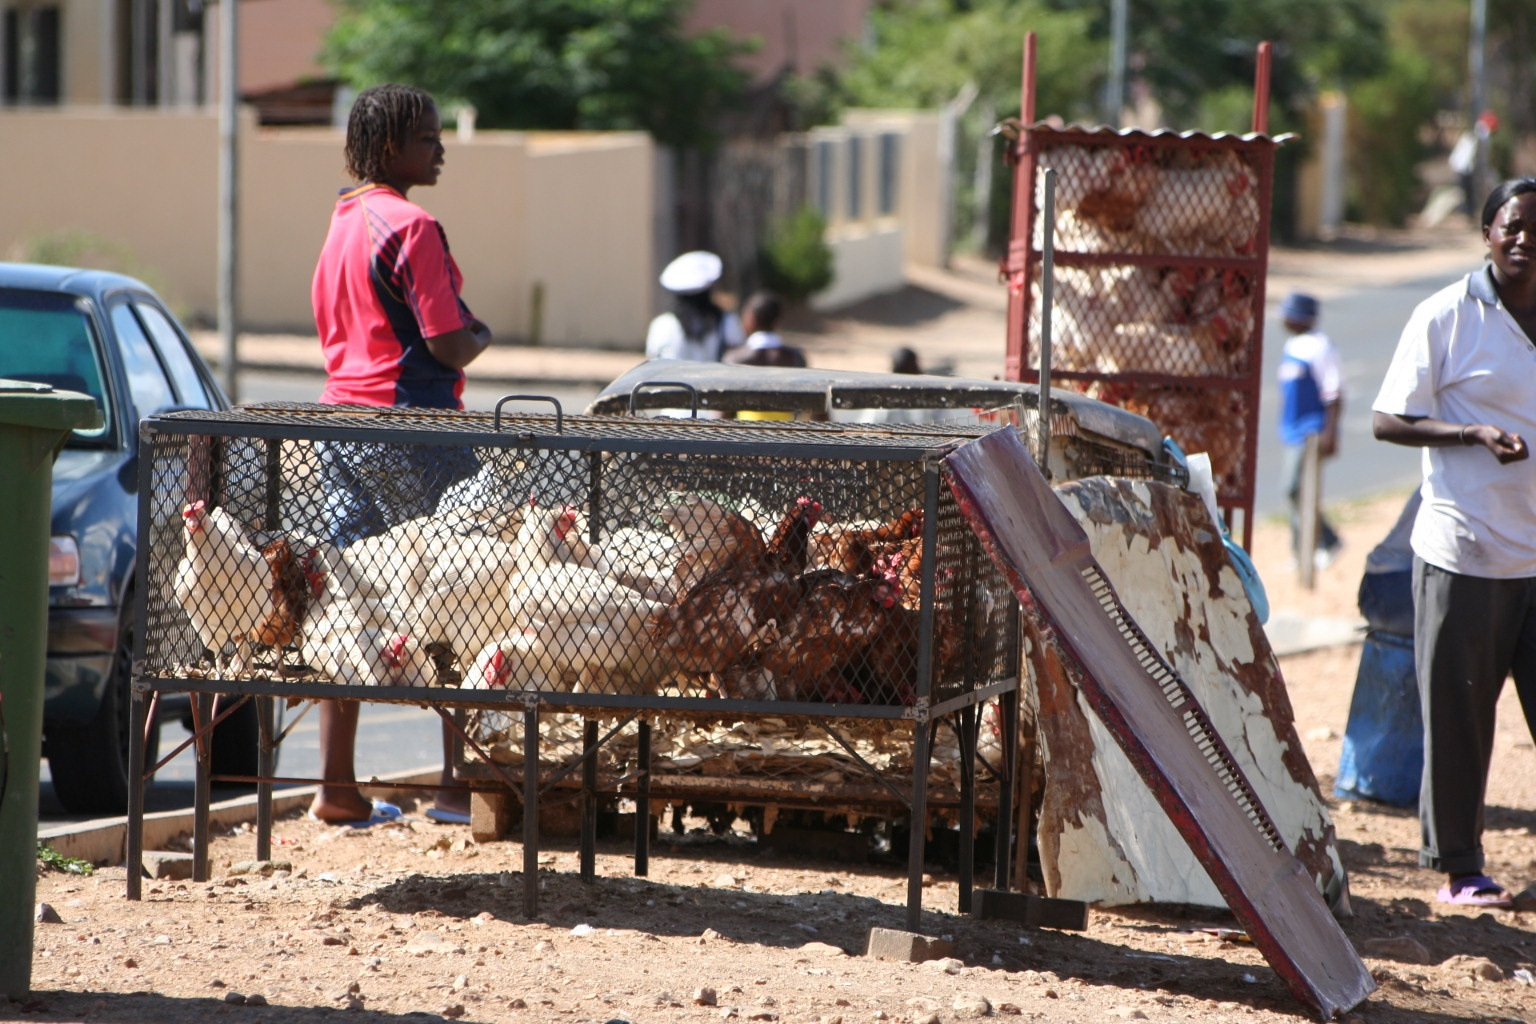 Live chickens at township market